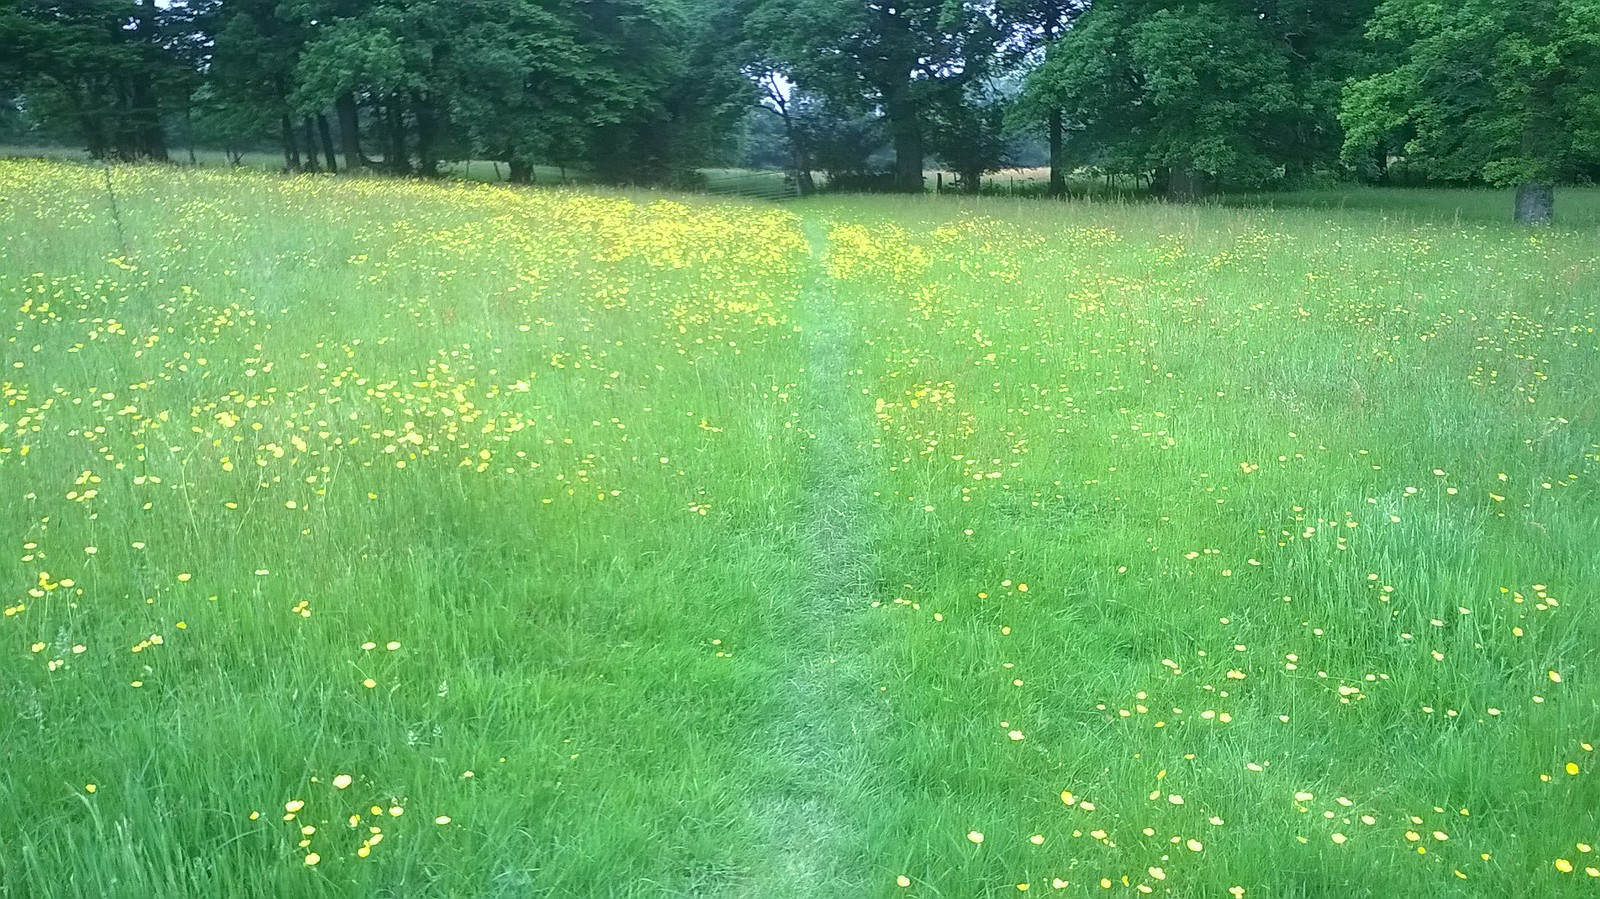 Tiptoe through the daisies alternative north-eastern route between points 6 & 7.